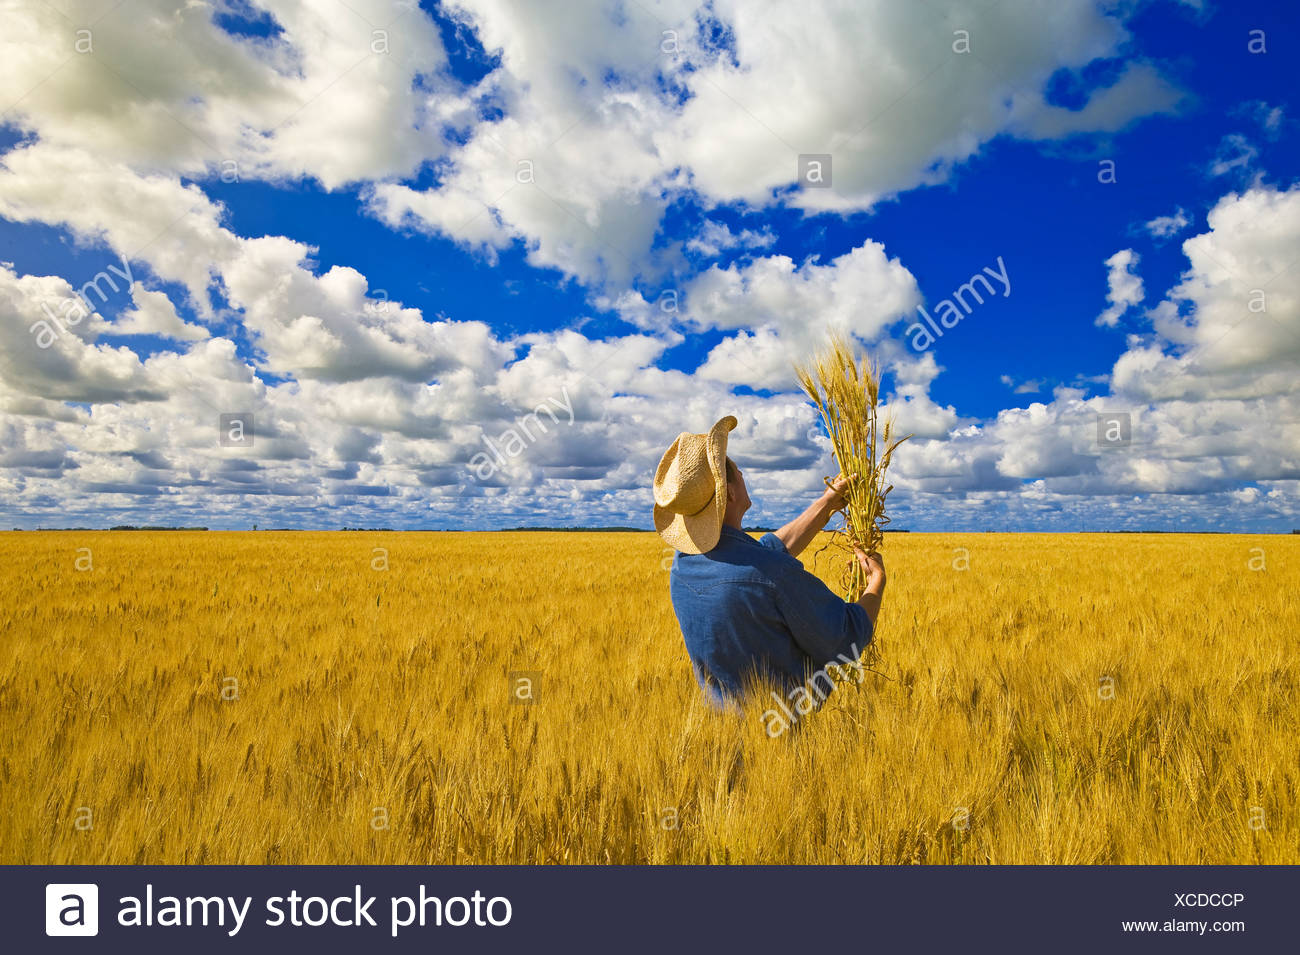 a man examines maturing spring wheat with a sky filled with cumulus clouds in the background, near Dugald, Manitoba, Canada - Stock Image